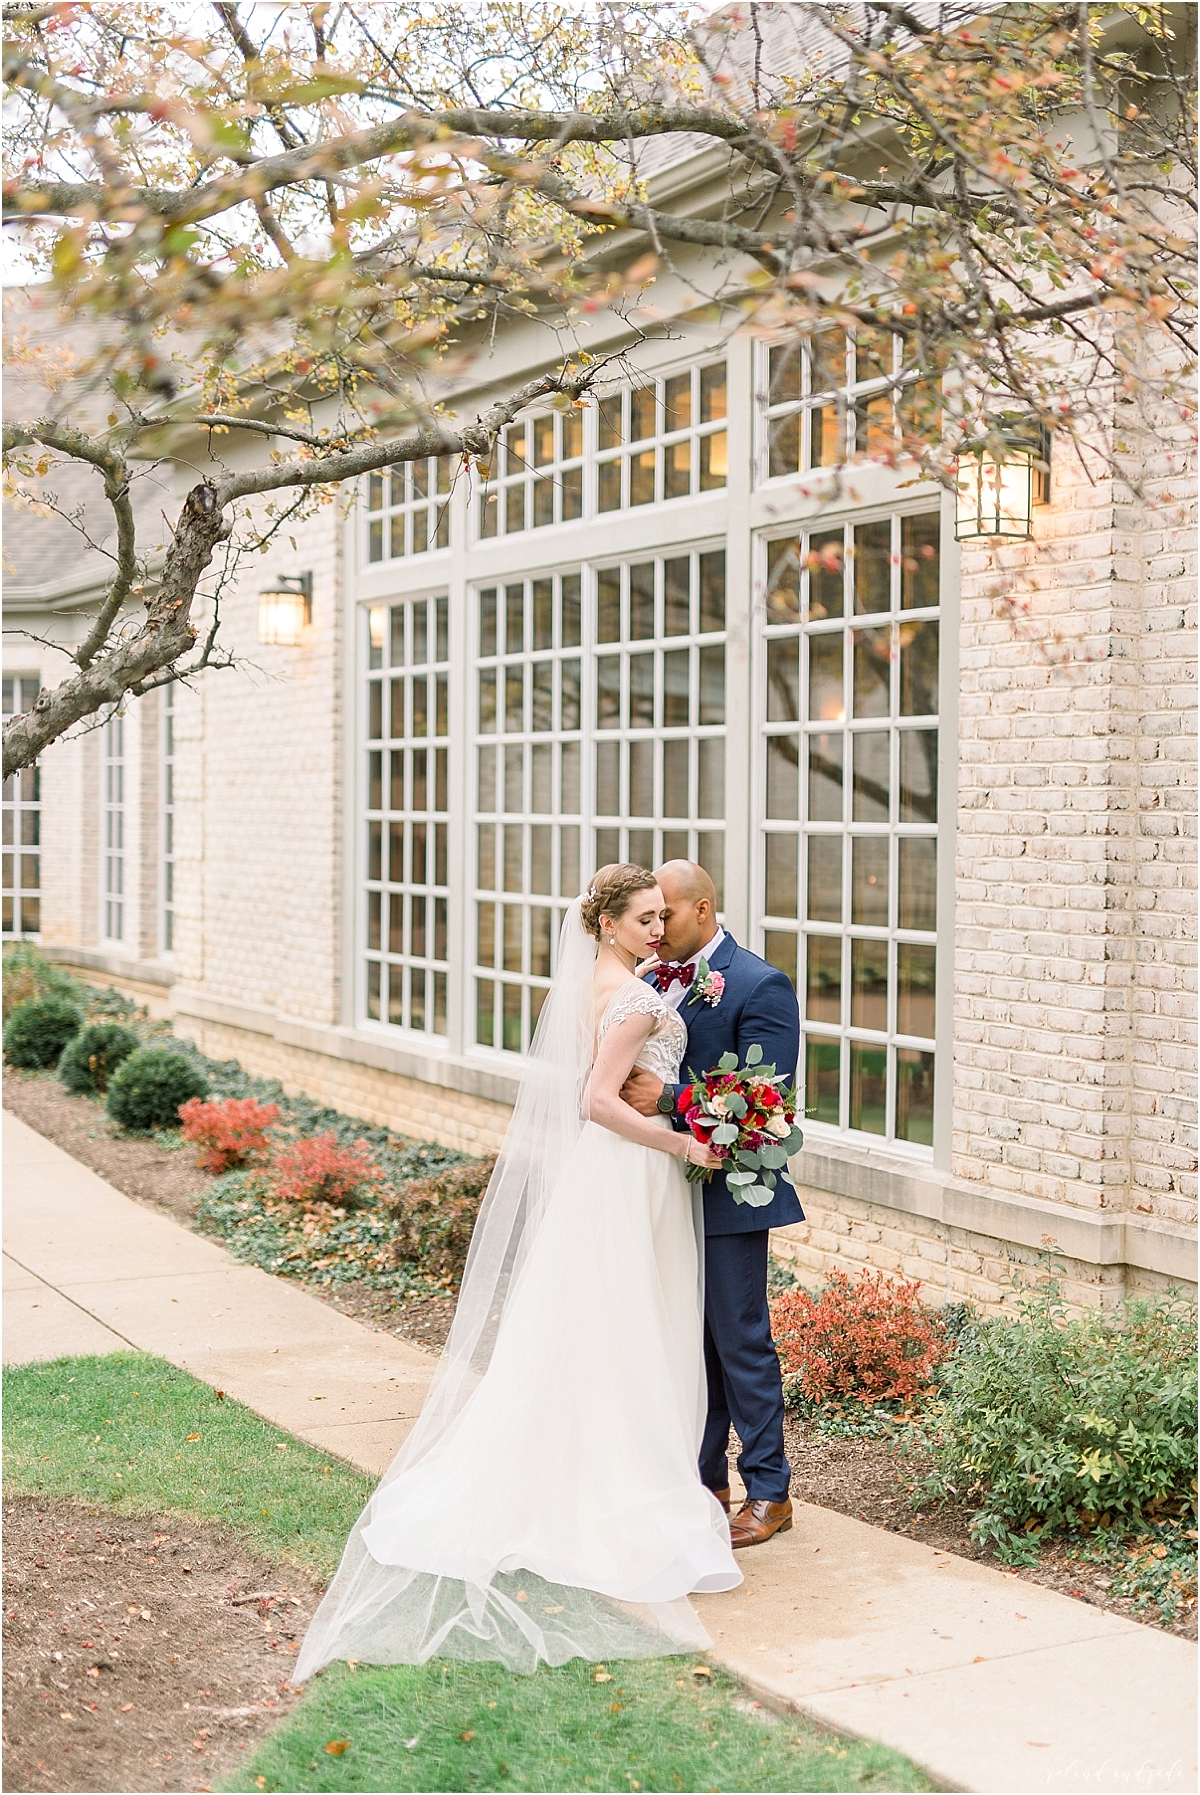 Naperville Country Club Wedding, Chicago Wedding Photographer, Naperville Wedding Photographer, Best Photographer In Aurora, Best Photographer In Chicago_0058.jpg